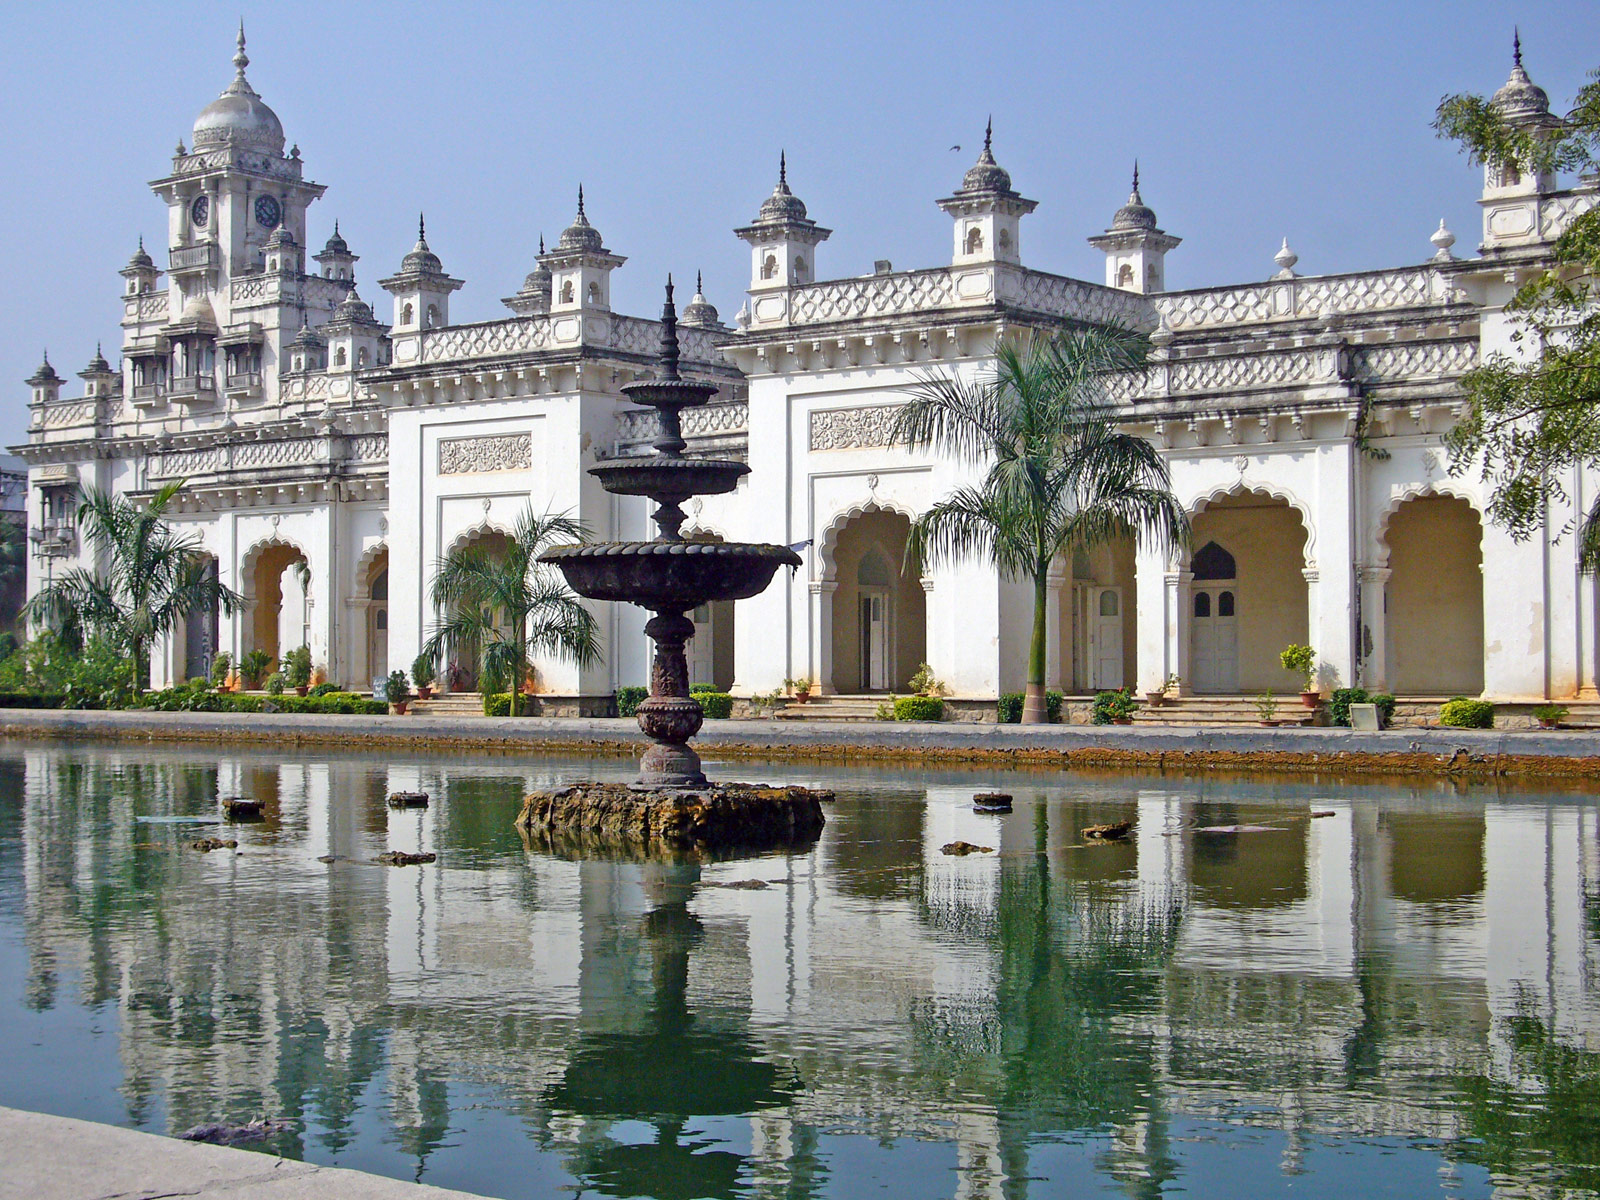 Famous Palaces of India India Travel Guide : Chowmahalla Palace from www.indiatravelblog.net size 1600 x 1200 jpeg 640kB